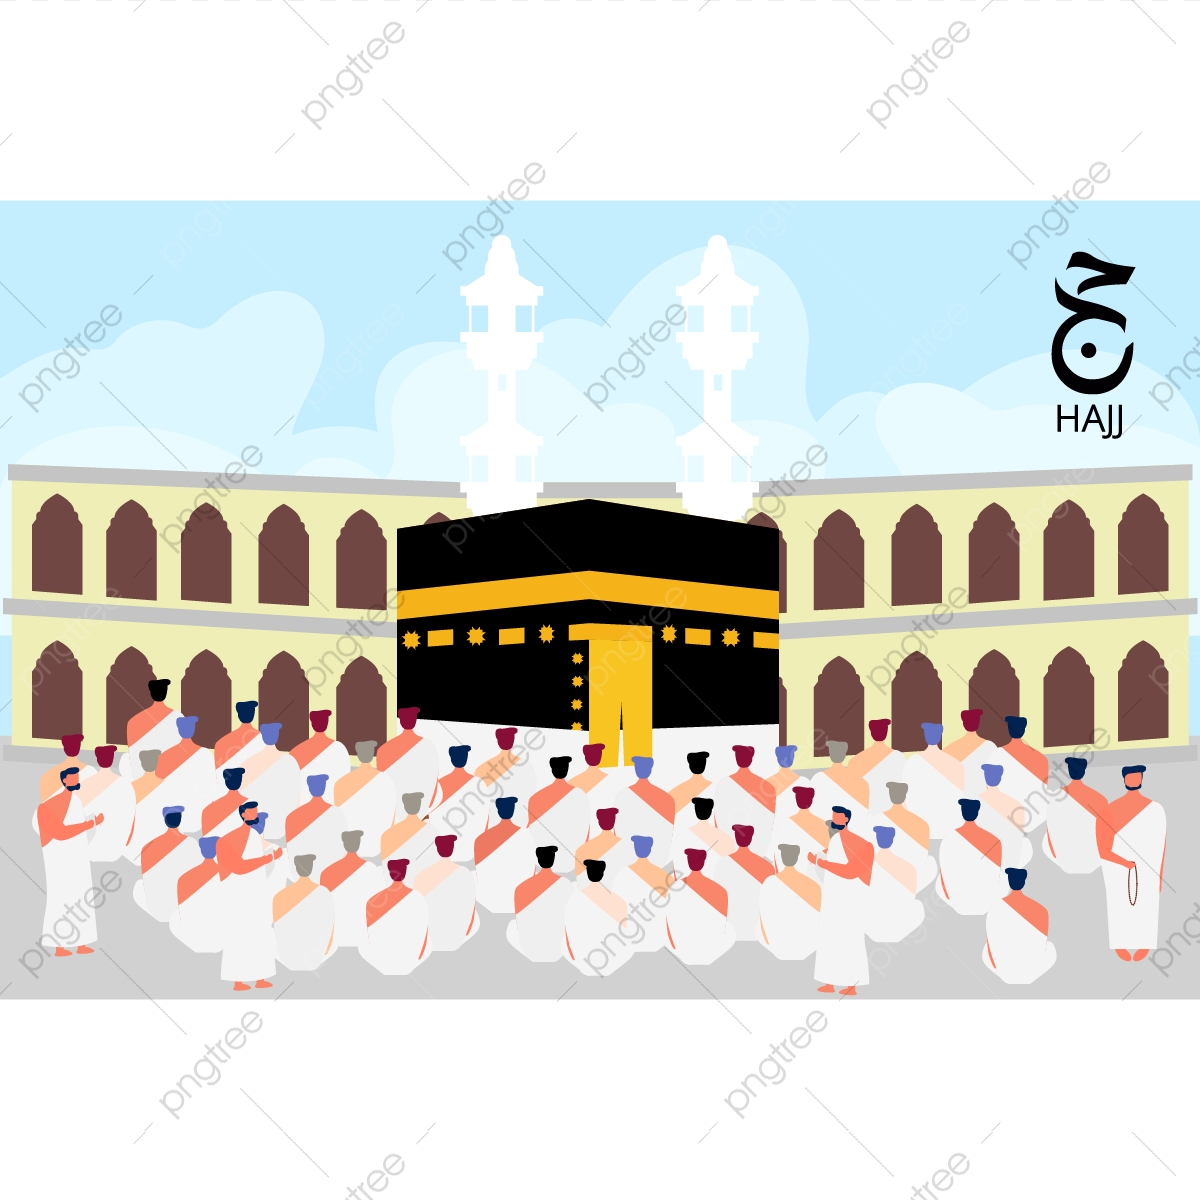 kabah png images vector and psd files free download on pngtree https pngtree com freepng islamic pilgrimage at kabah 5232894 html